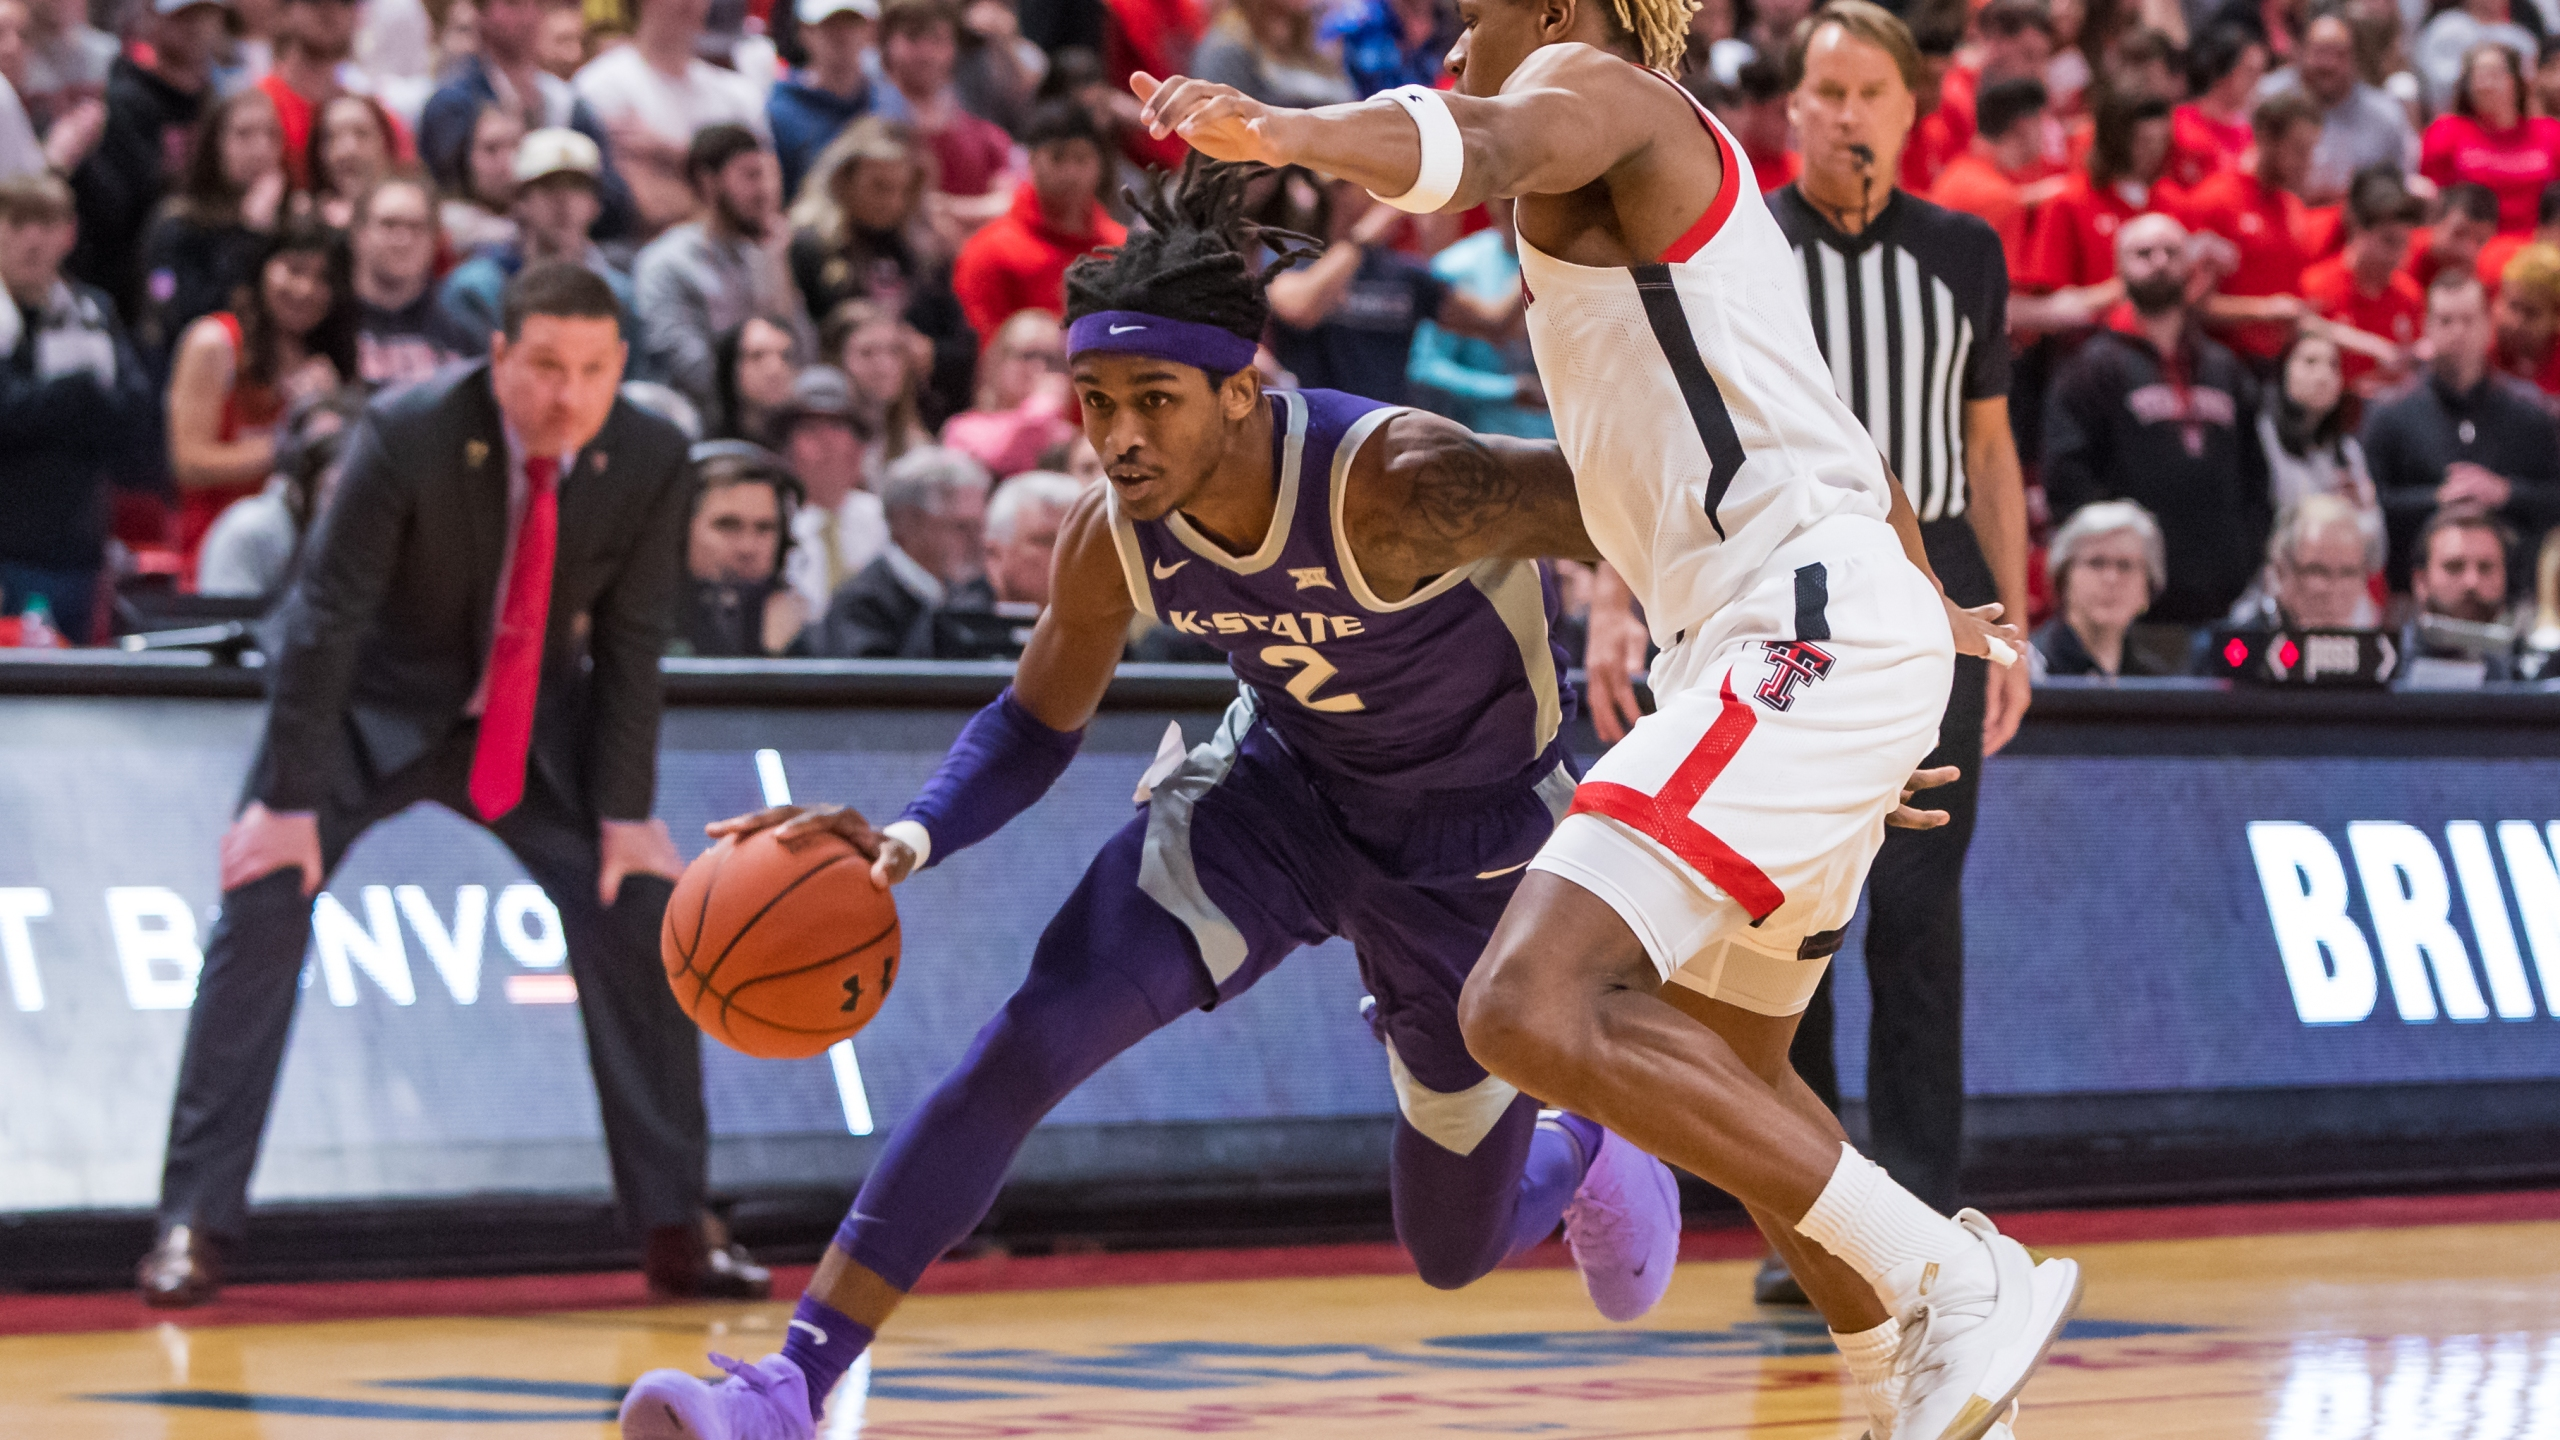 Frustration Boils In Wildcats Loss To Texas Tech Ksnt News